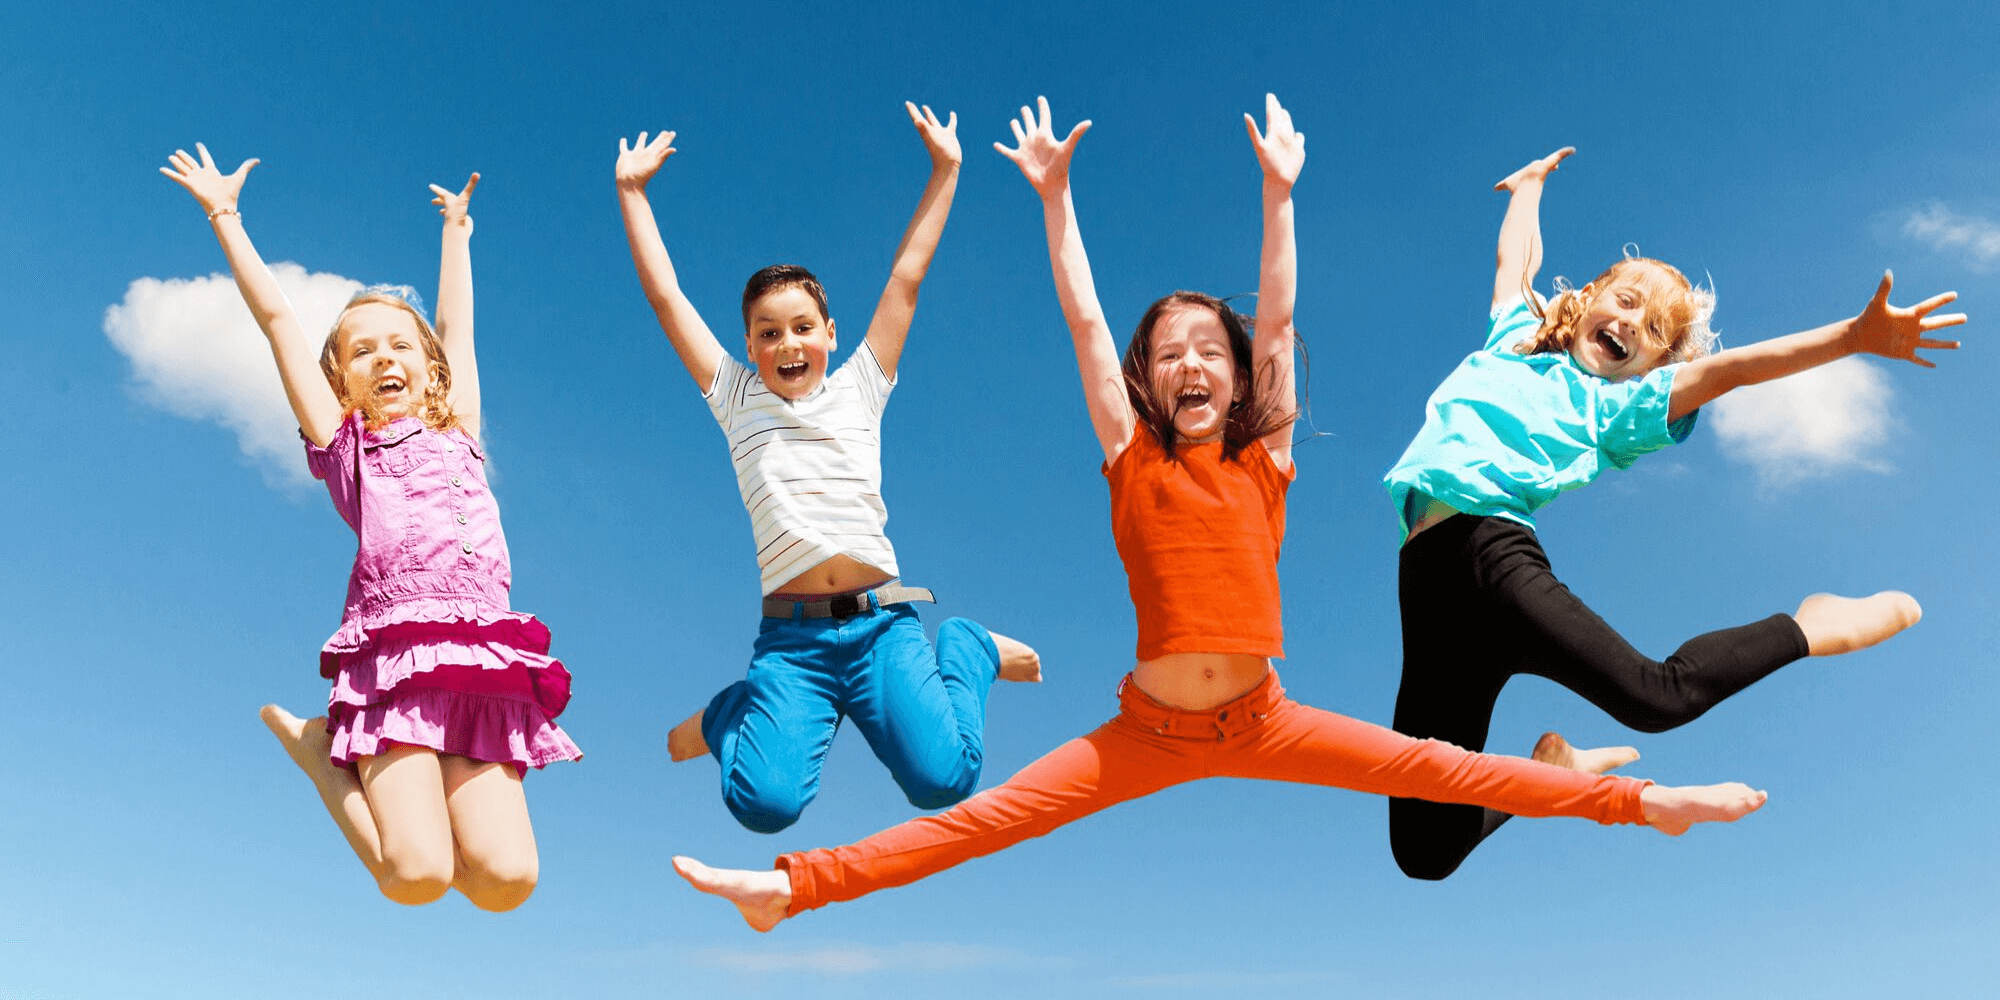 Group of children jumping up in happiness